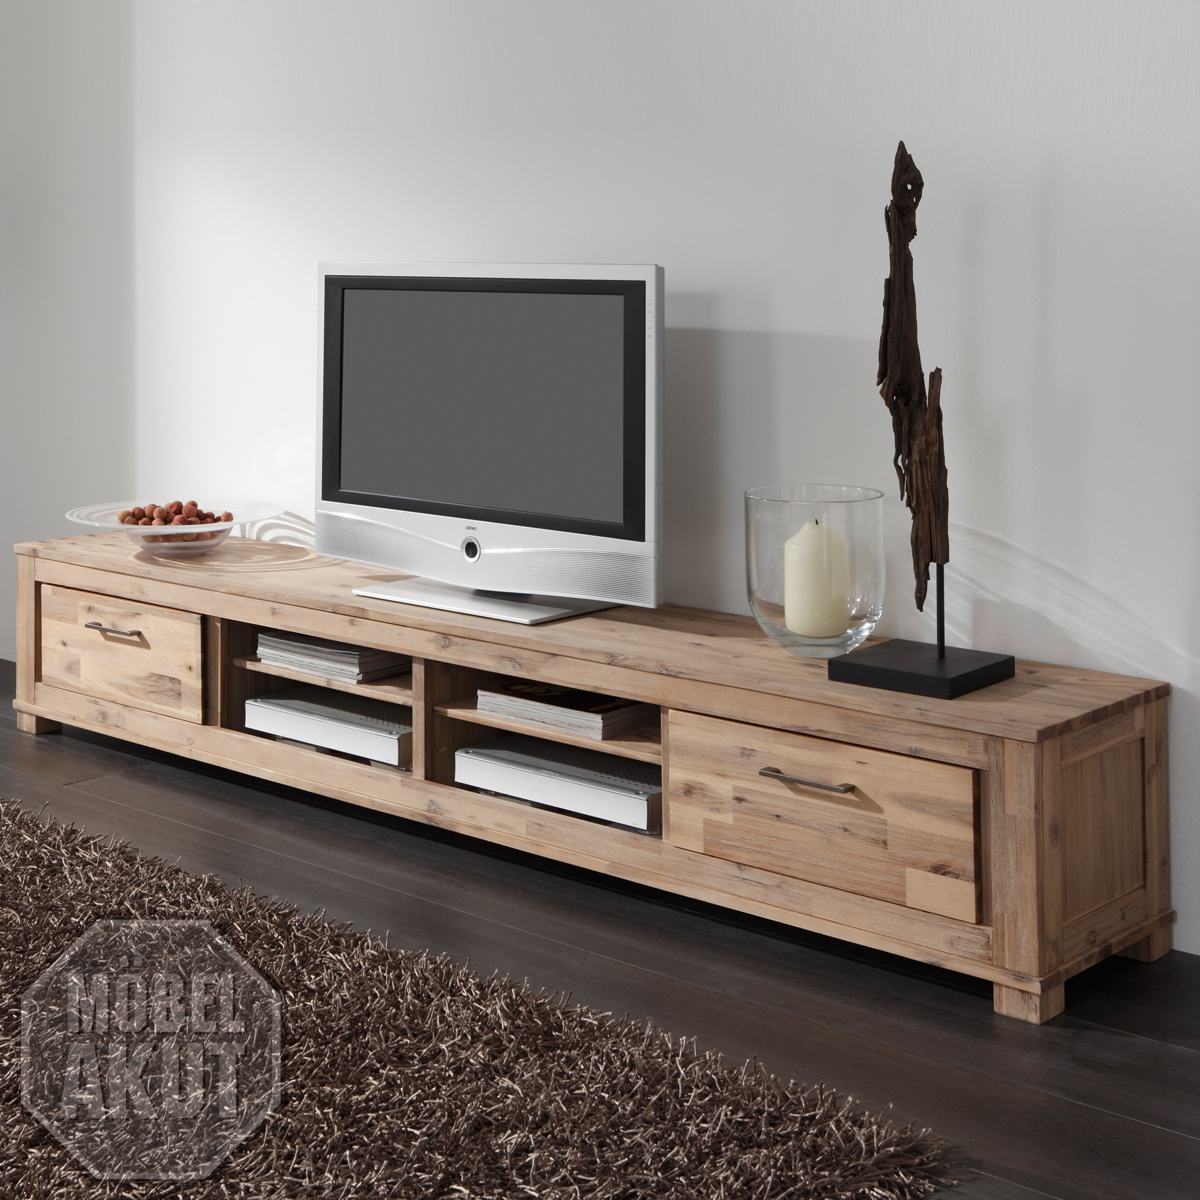 lowboard canaria tv board in akazie massiv sand neu. Black Bedroom Furniture Sets. Home Design Ideas